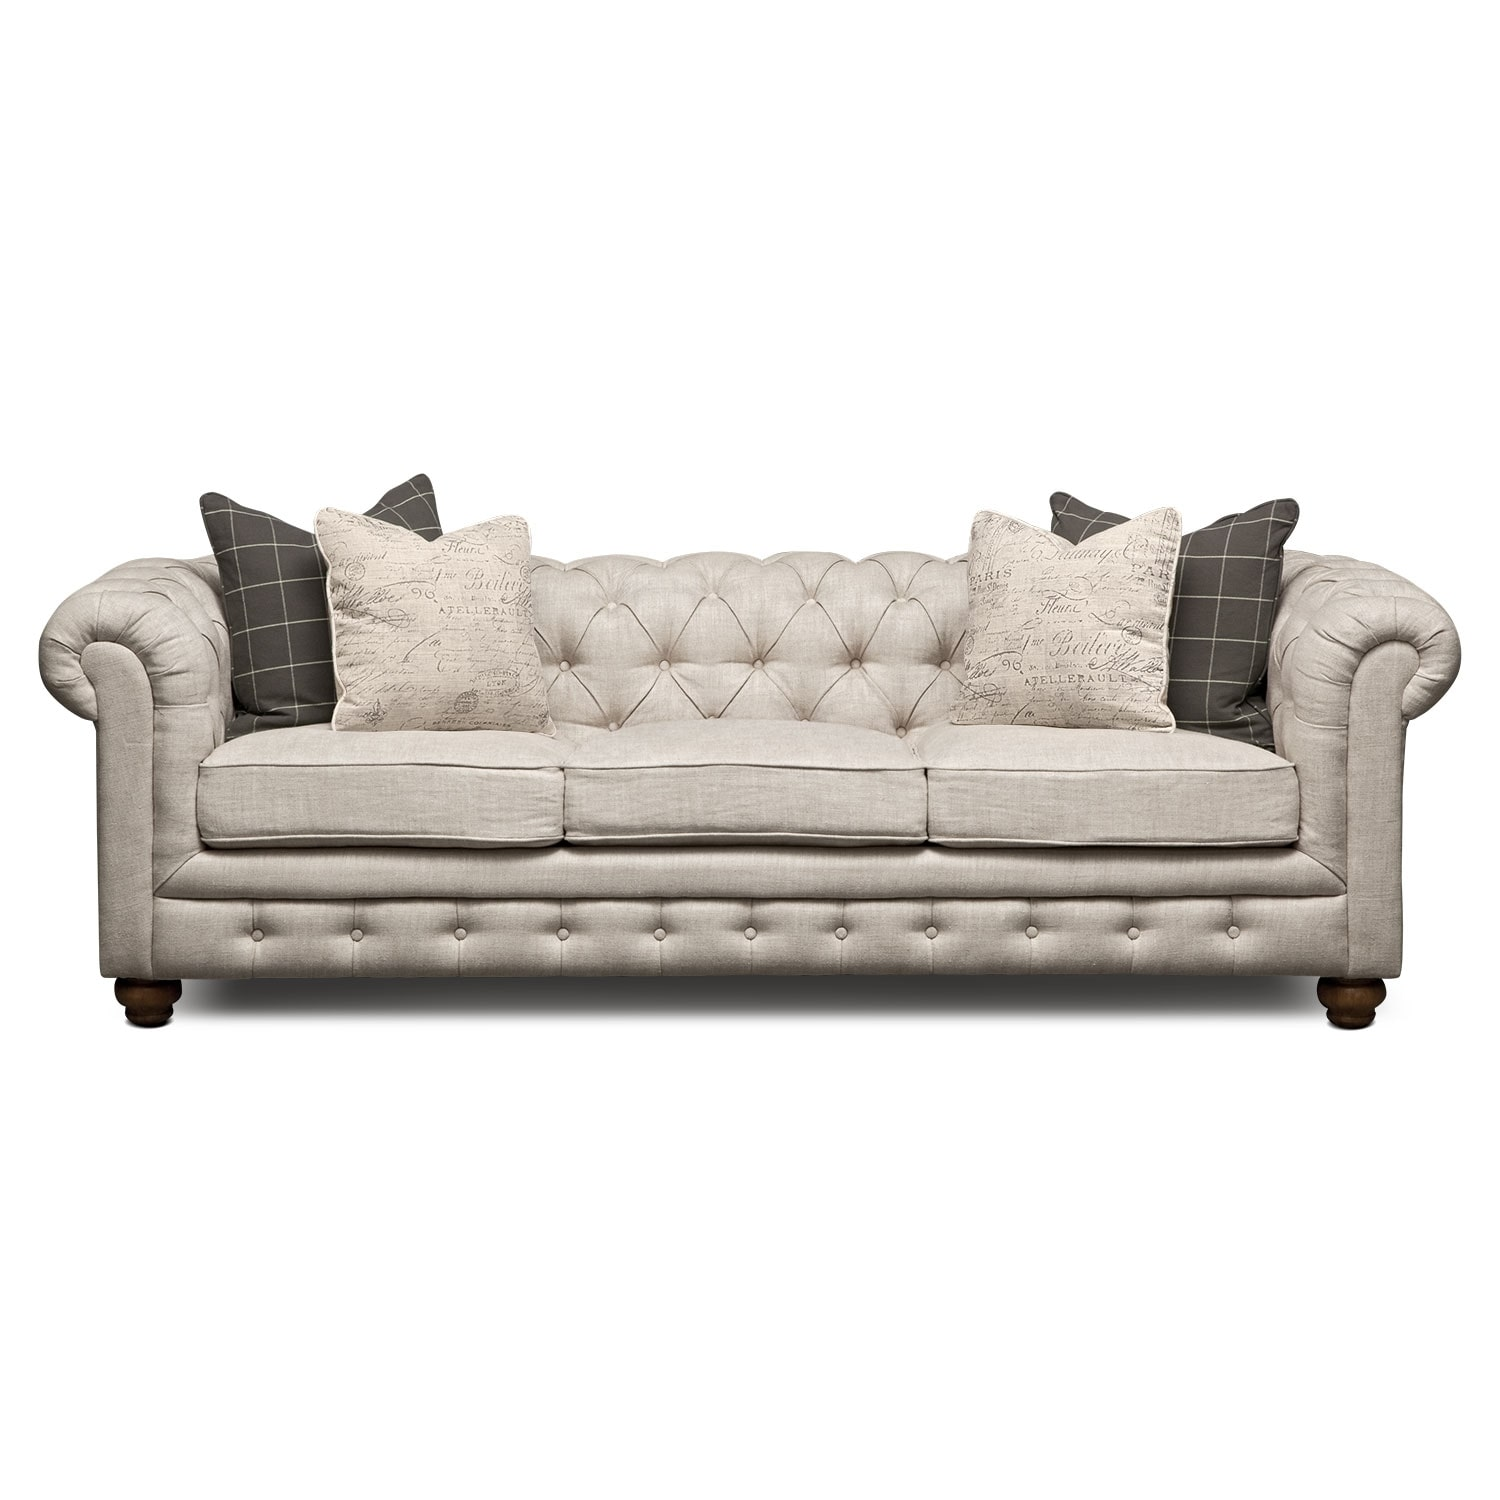 american signature sofa 28 images value city furniture  : 349727 from 45.76.165.227 size 1500 x 1500 jpeg 284kB